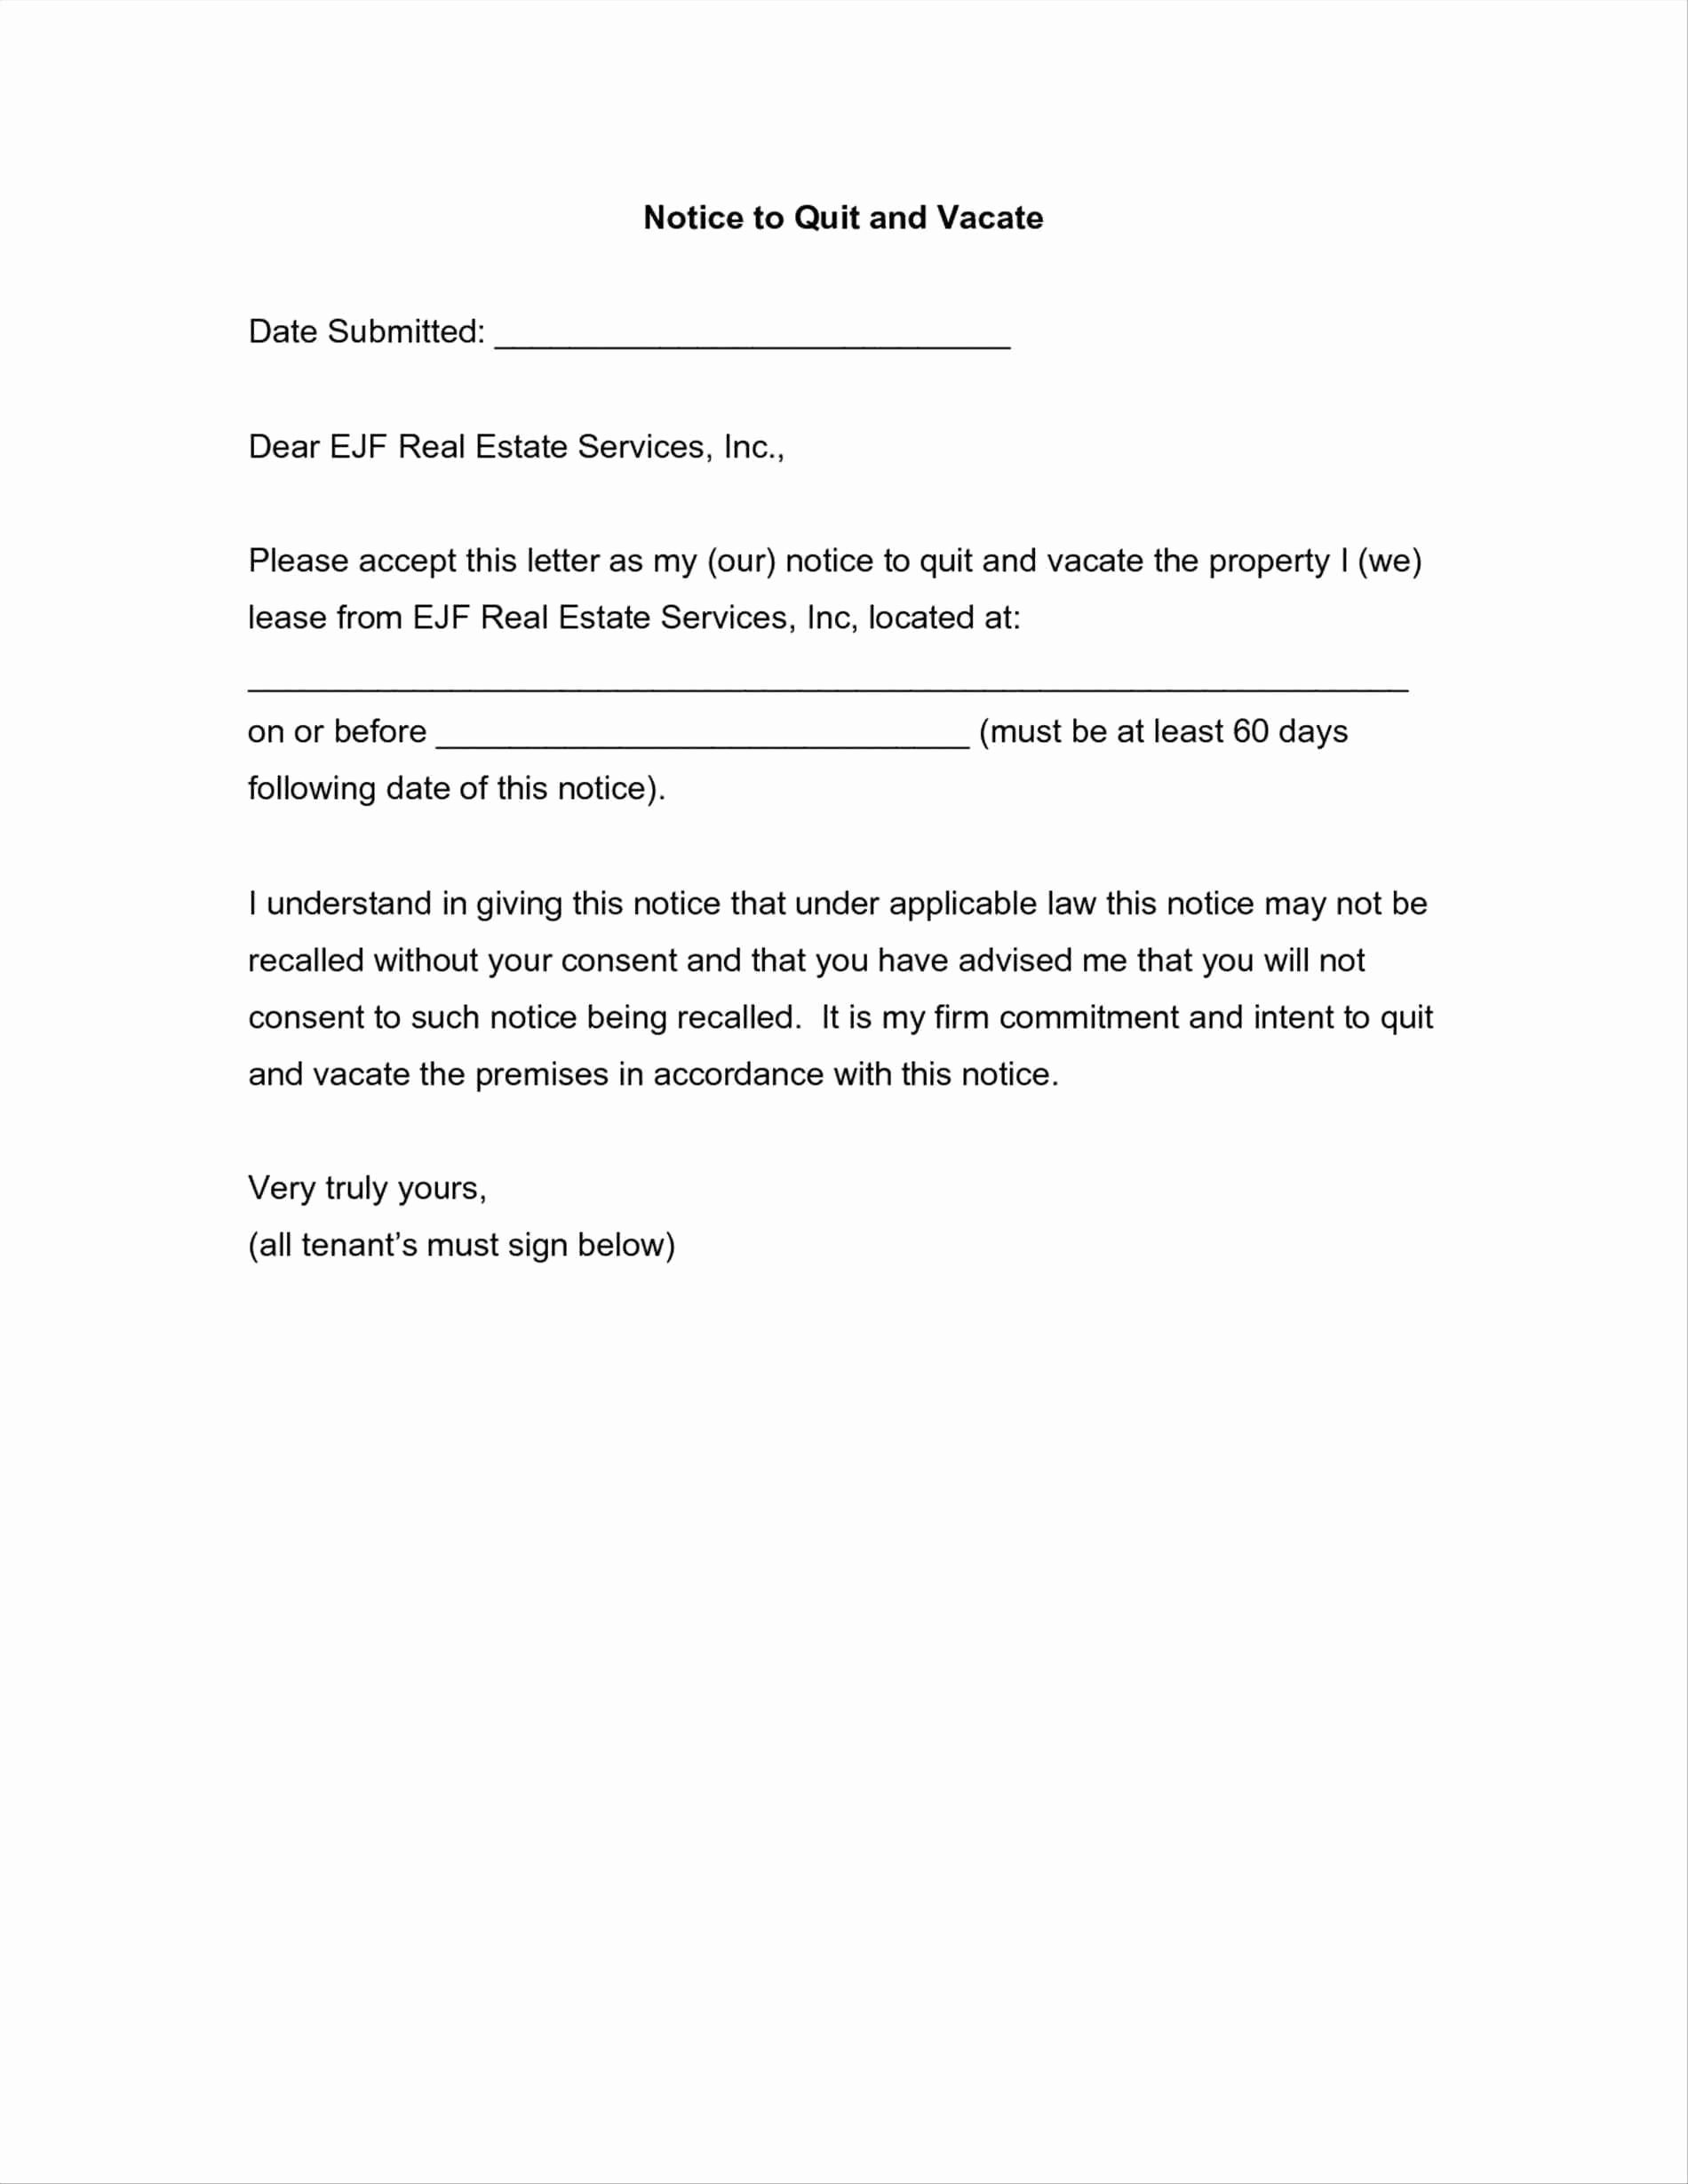 Notice to Vacate Apartment Inspirational Notice to Vacate Apartment Letter Template Samples